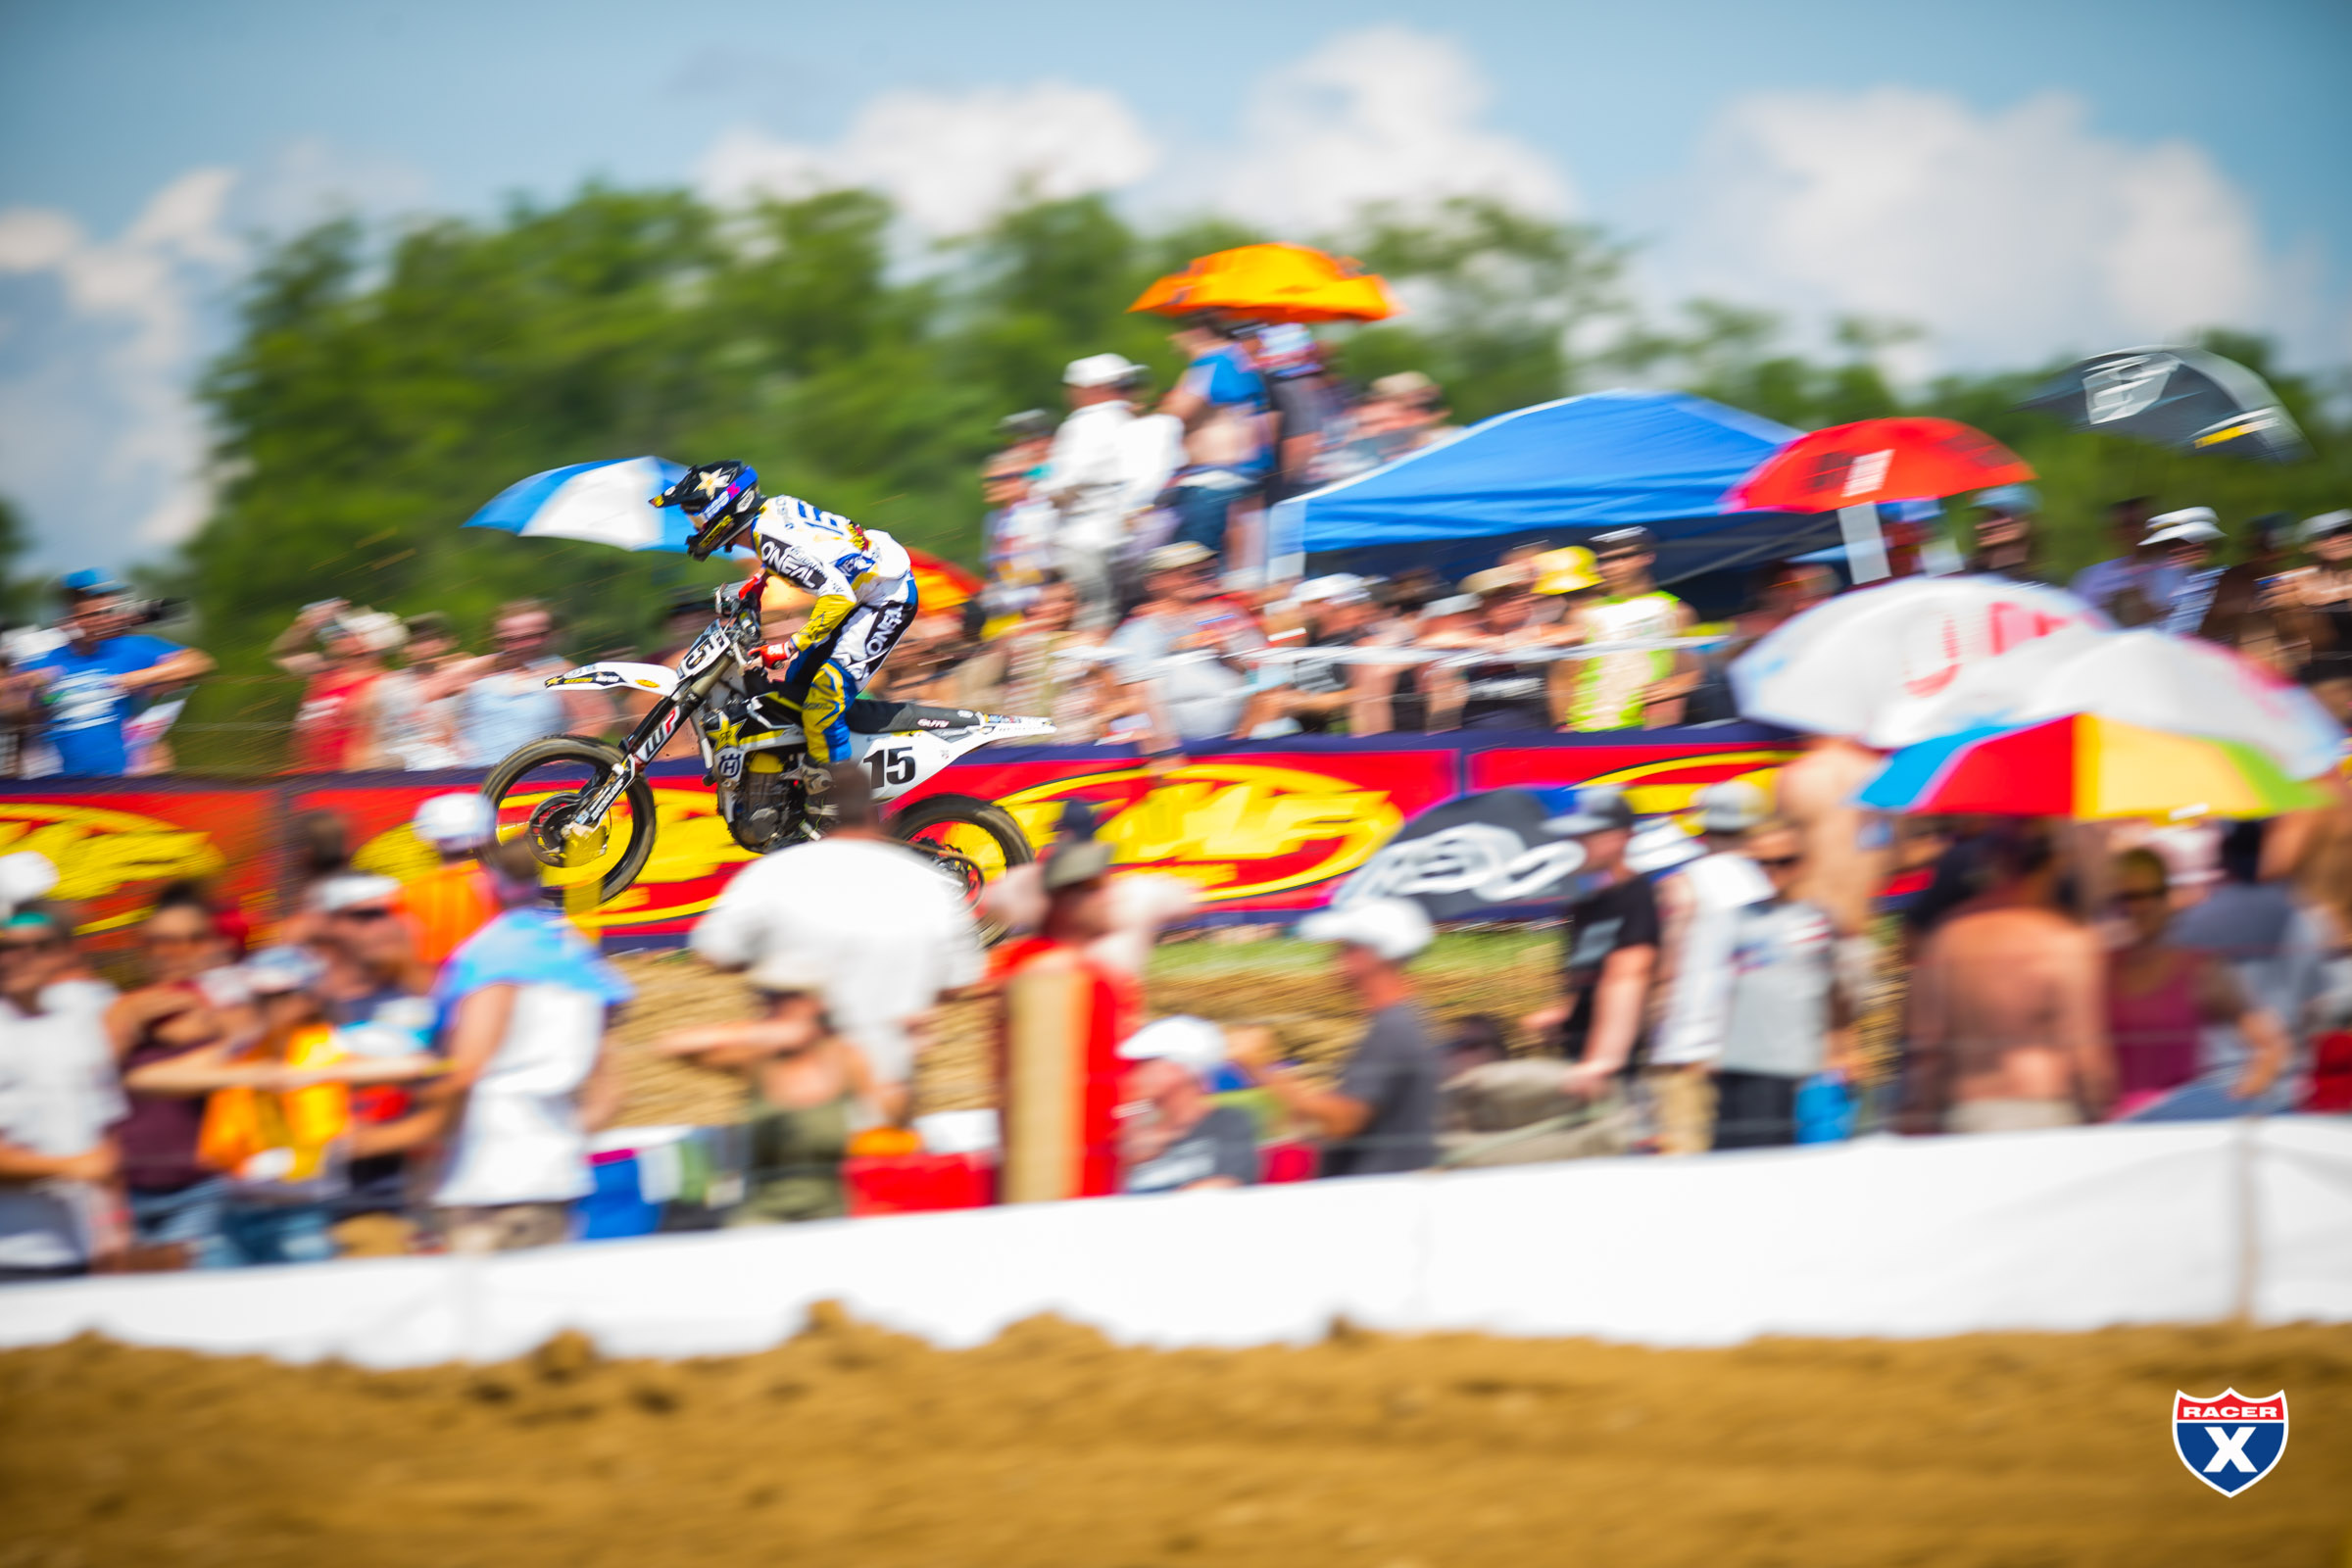 Wilson_MX17_HighPoint_JK_1405